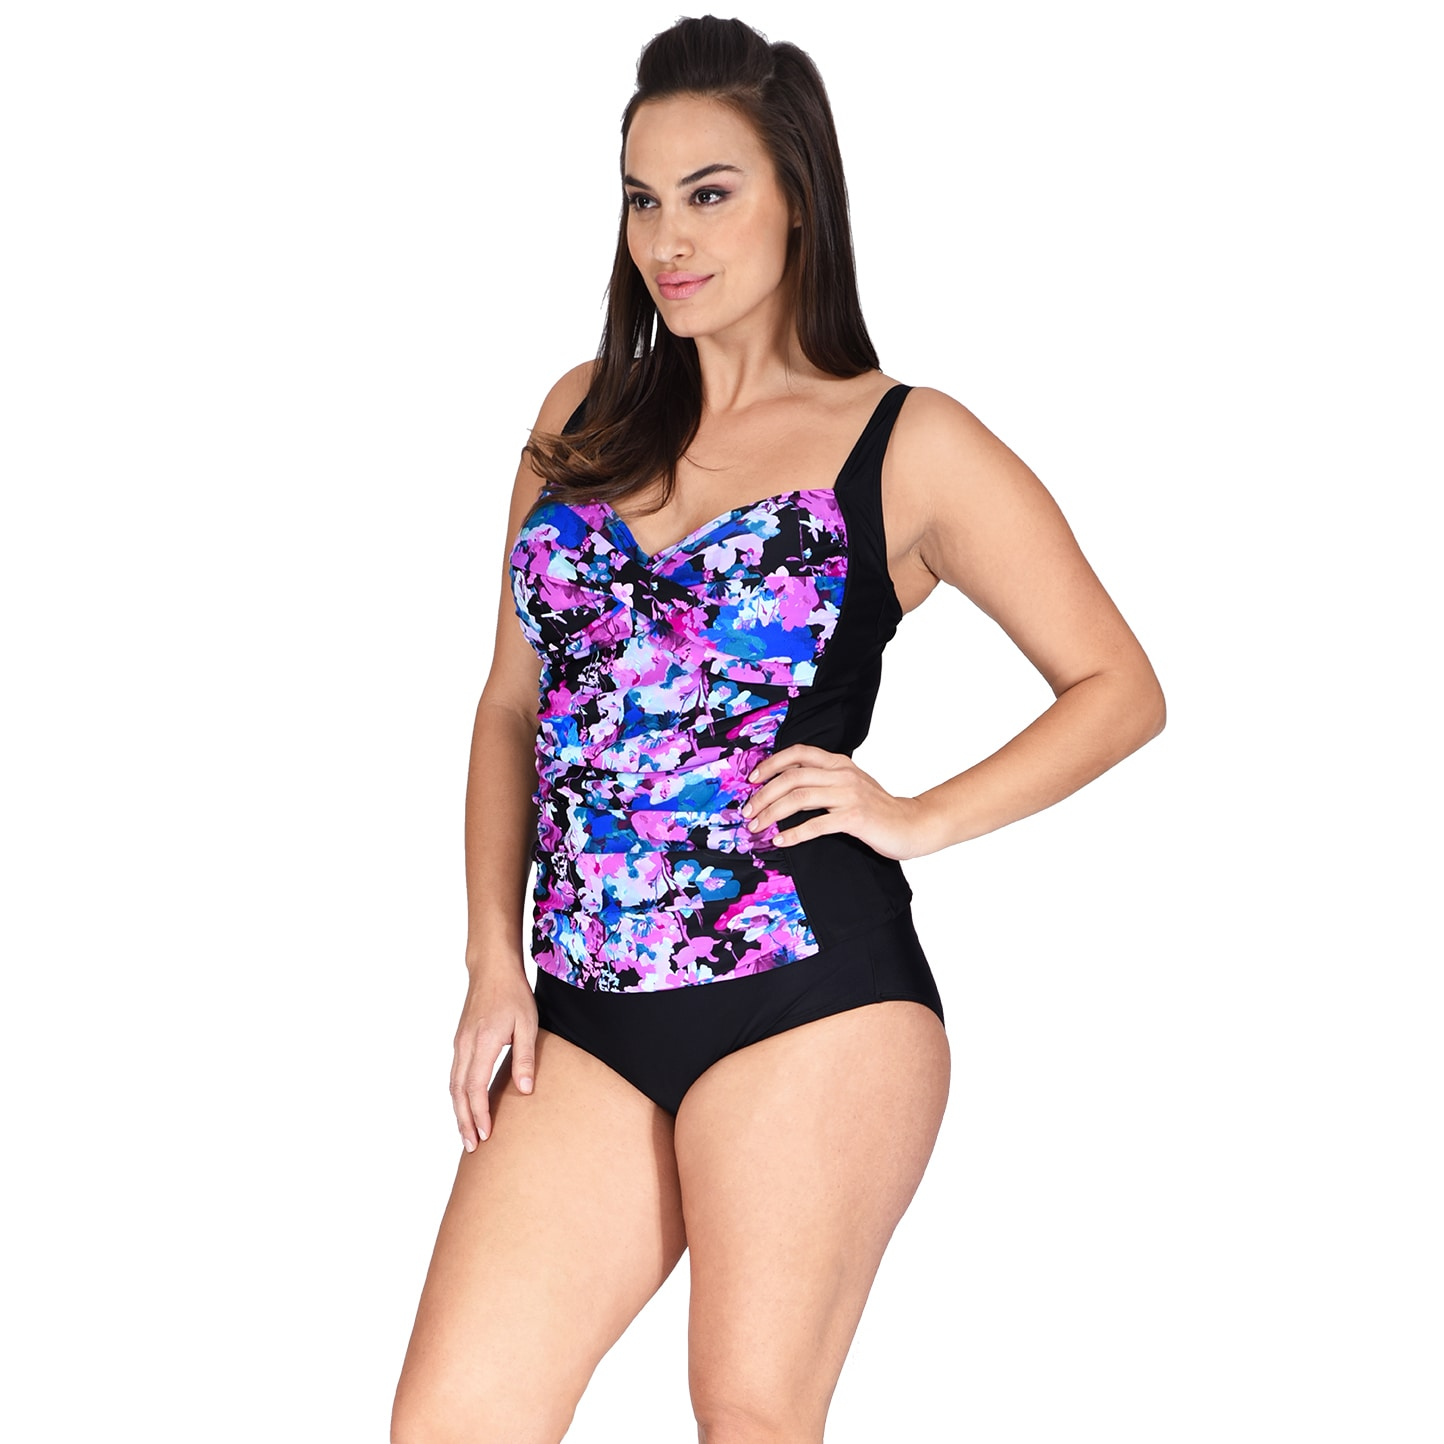 eea5ded7add5f Shop Ruched Twist Front Plus Size Women's Tankini Top by Mazu Swim - Free  Shipping On Orders Over $45 - Overstock - 14724860